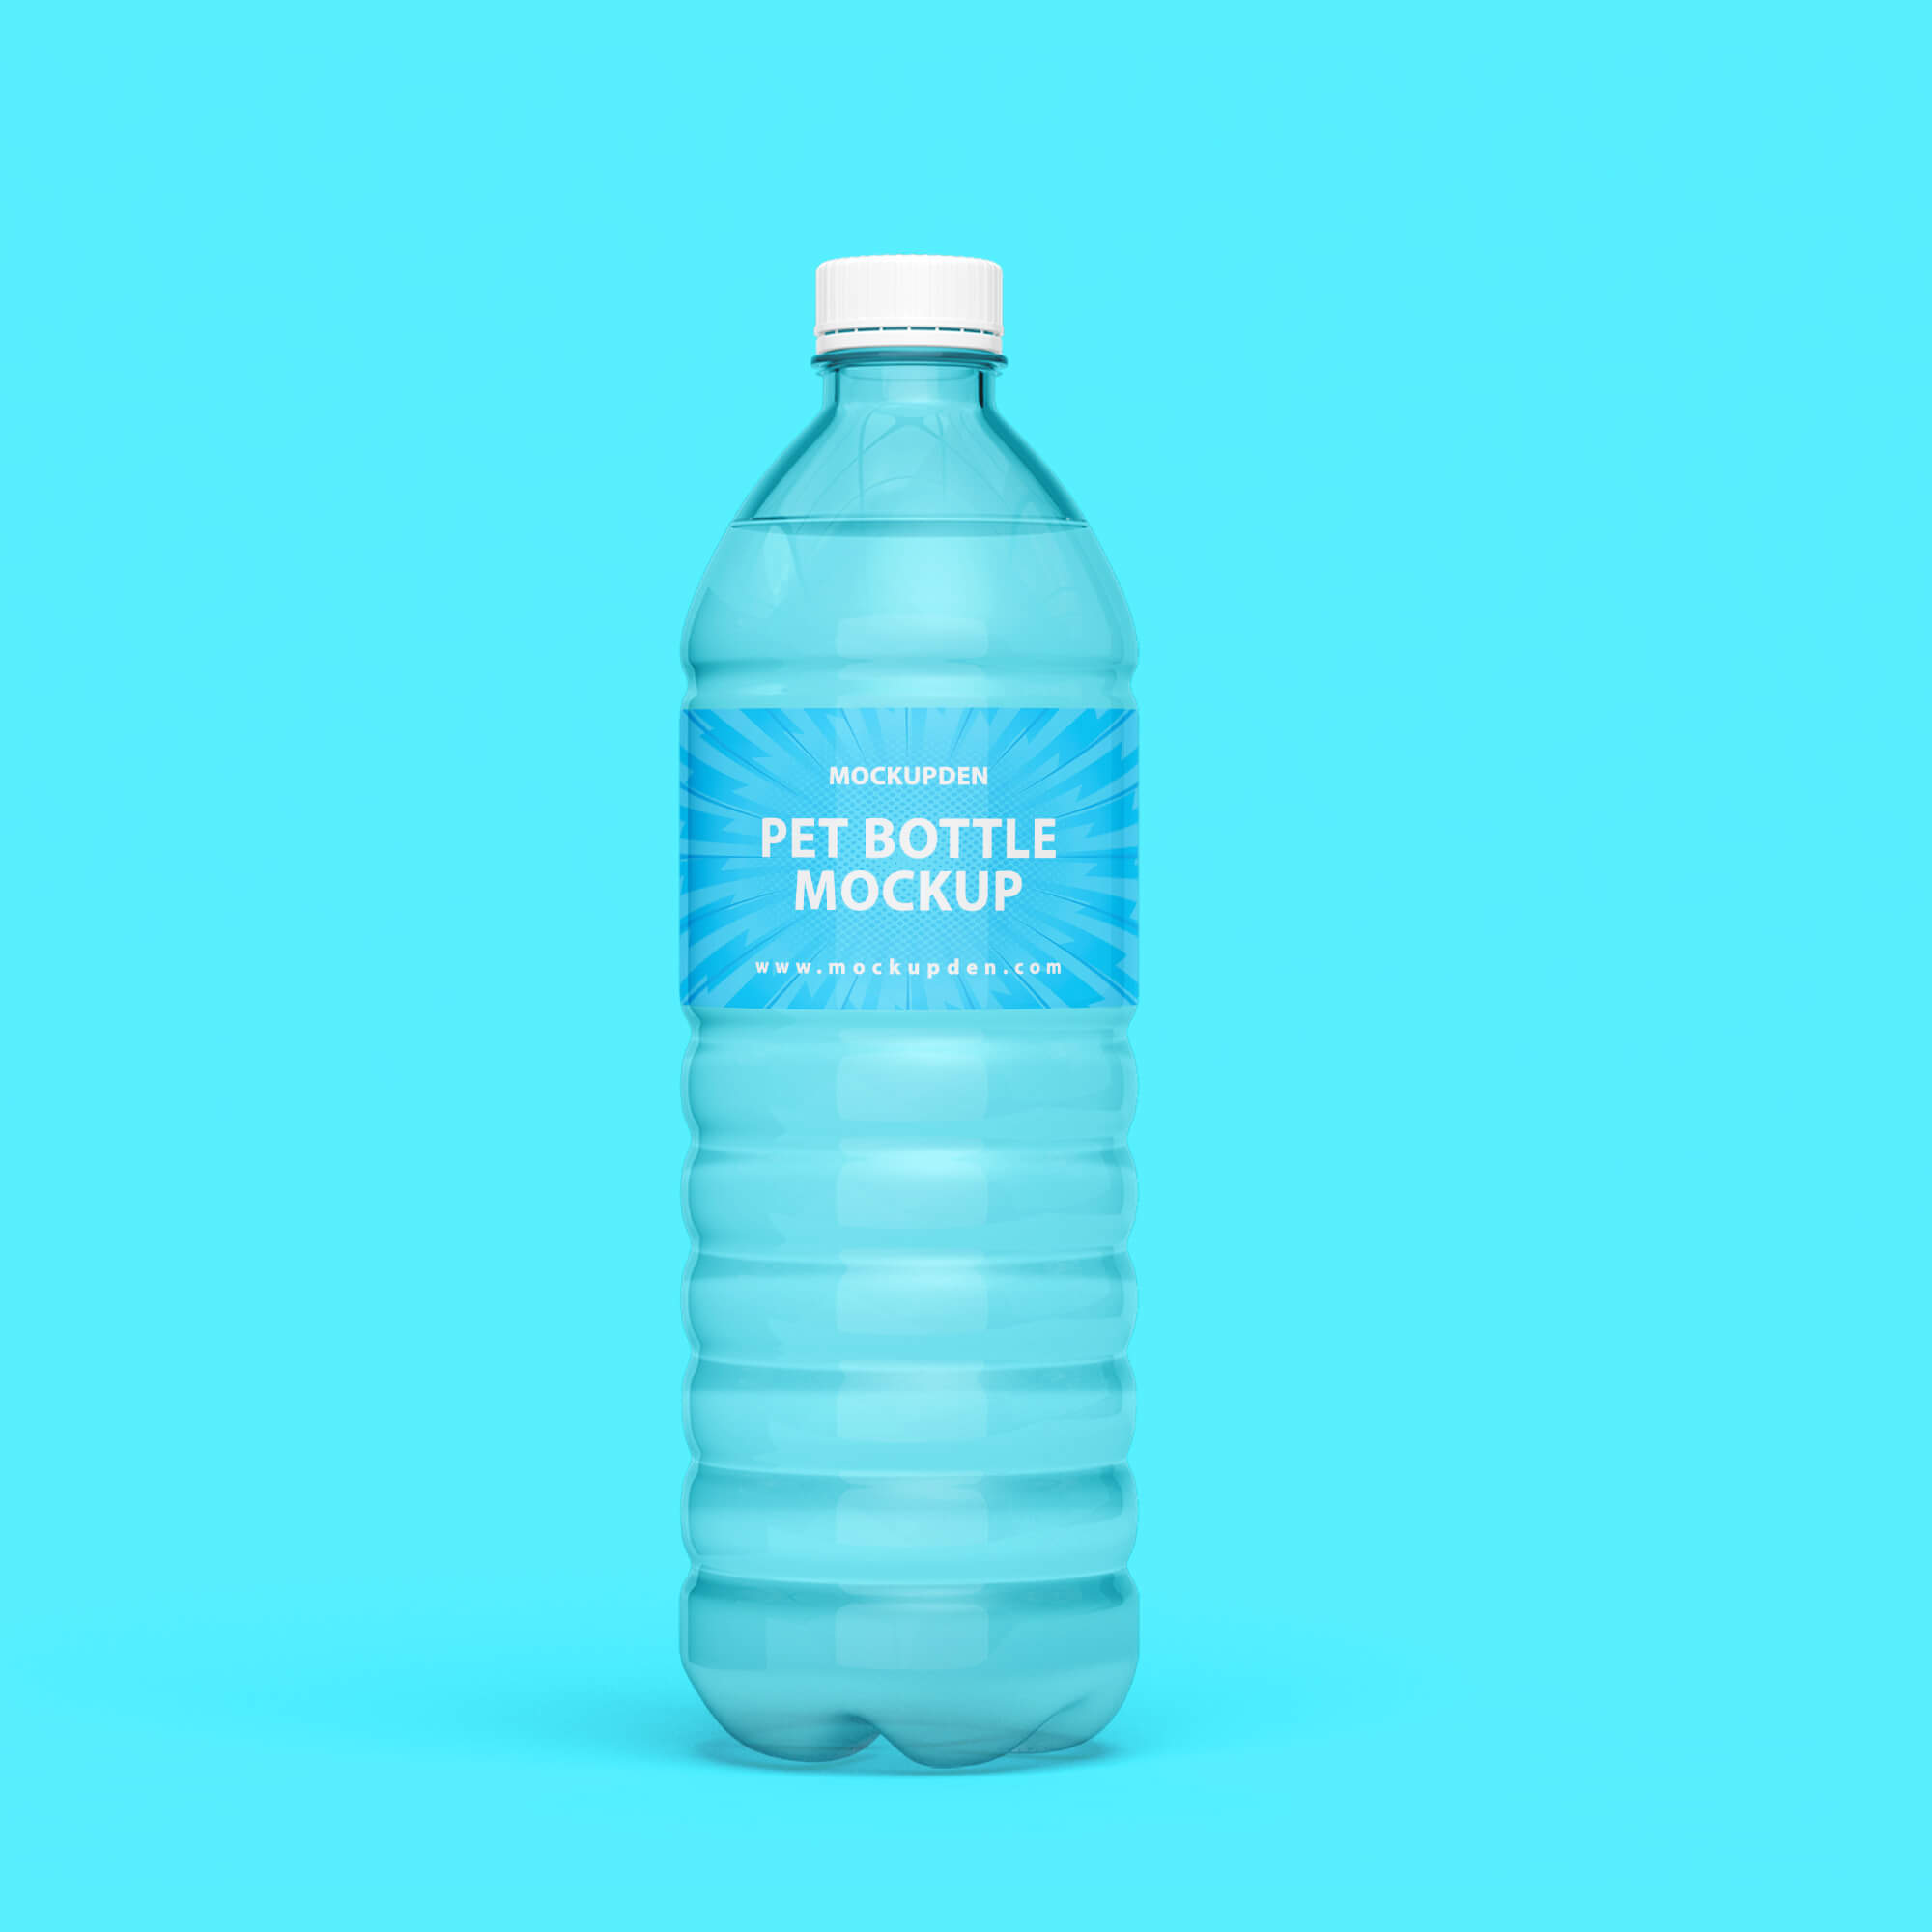 Design Free Pet Bottle Mockup PSD Template